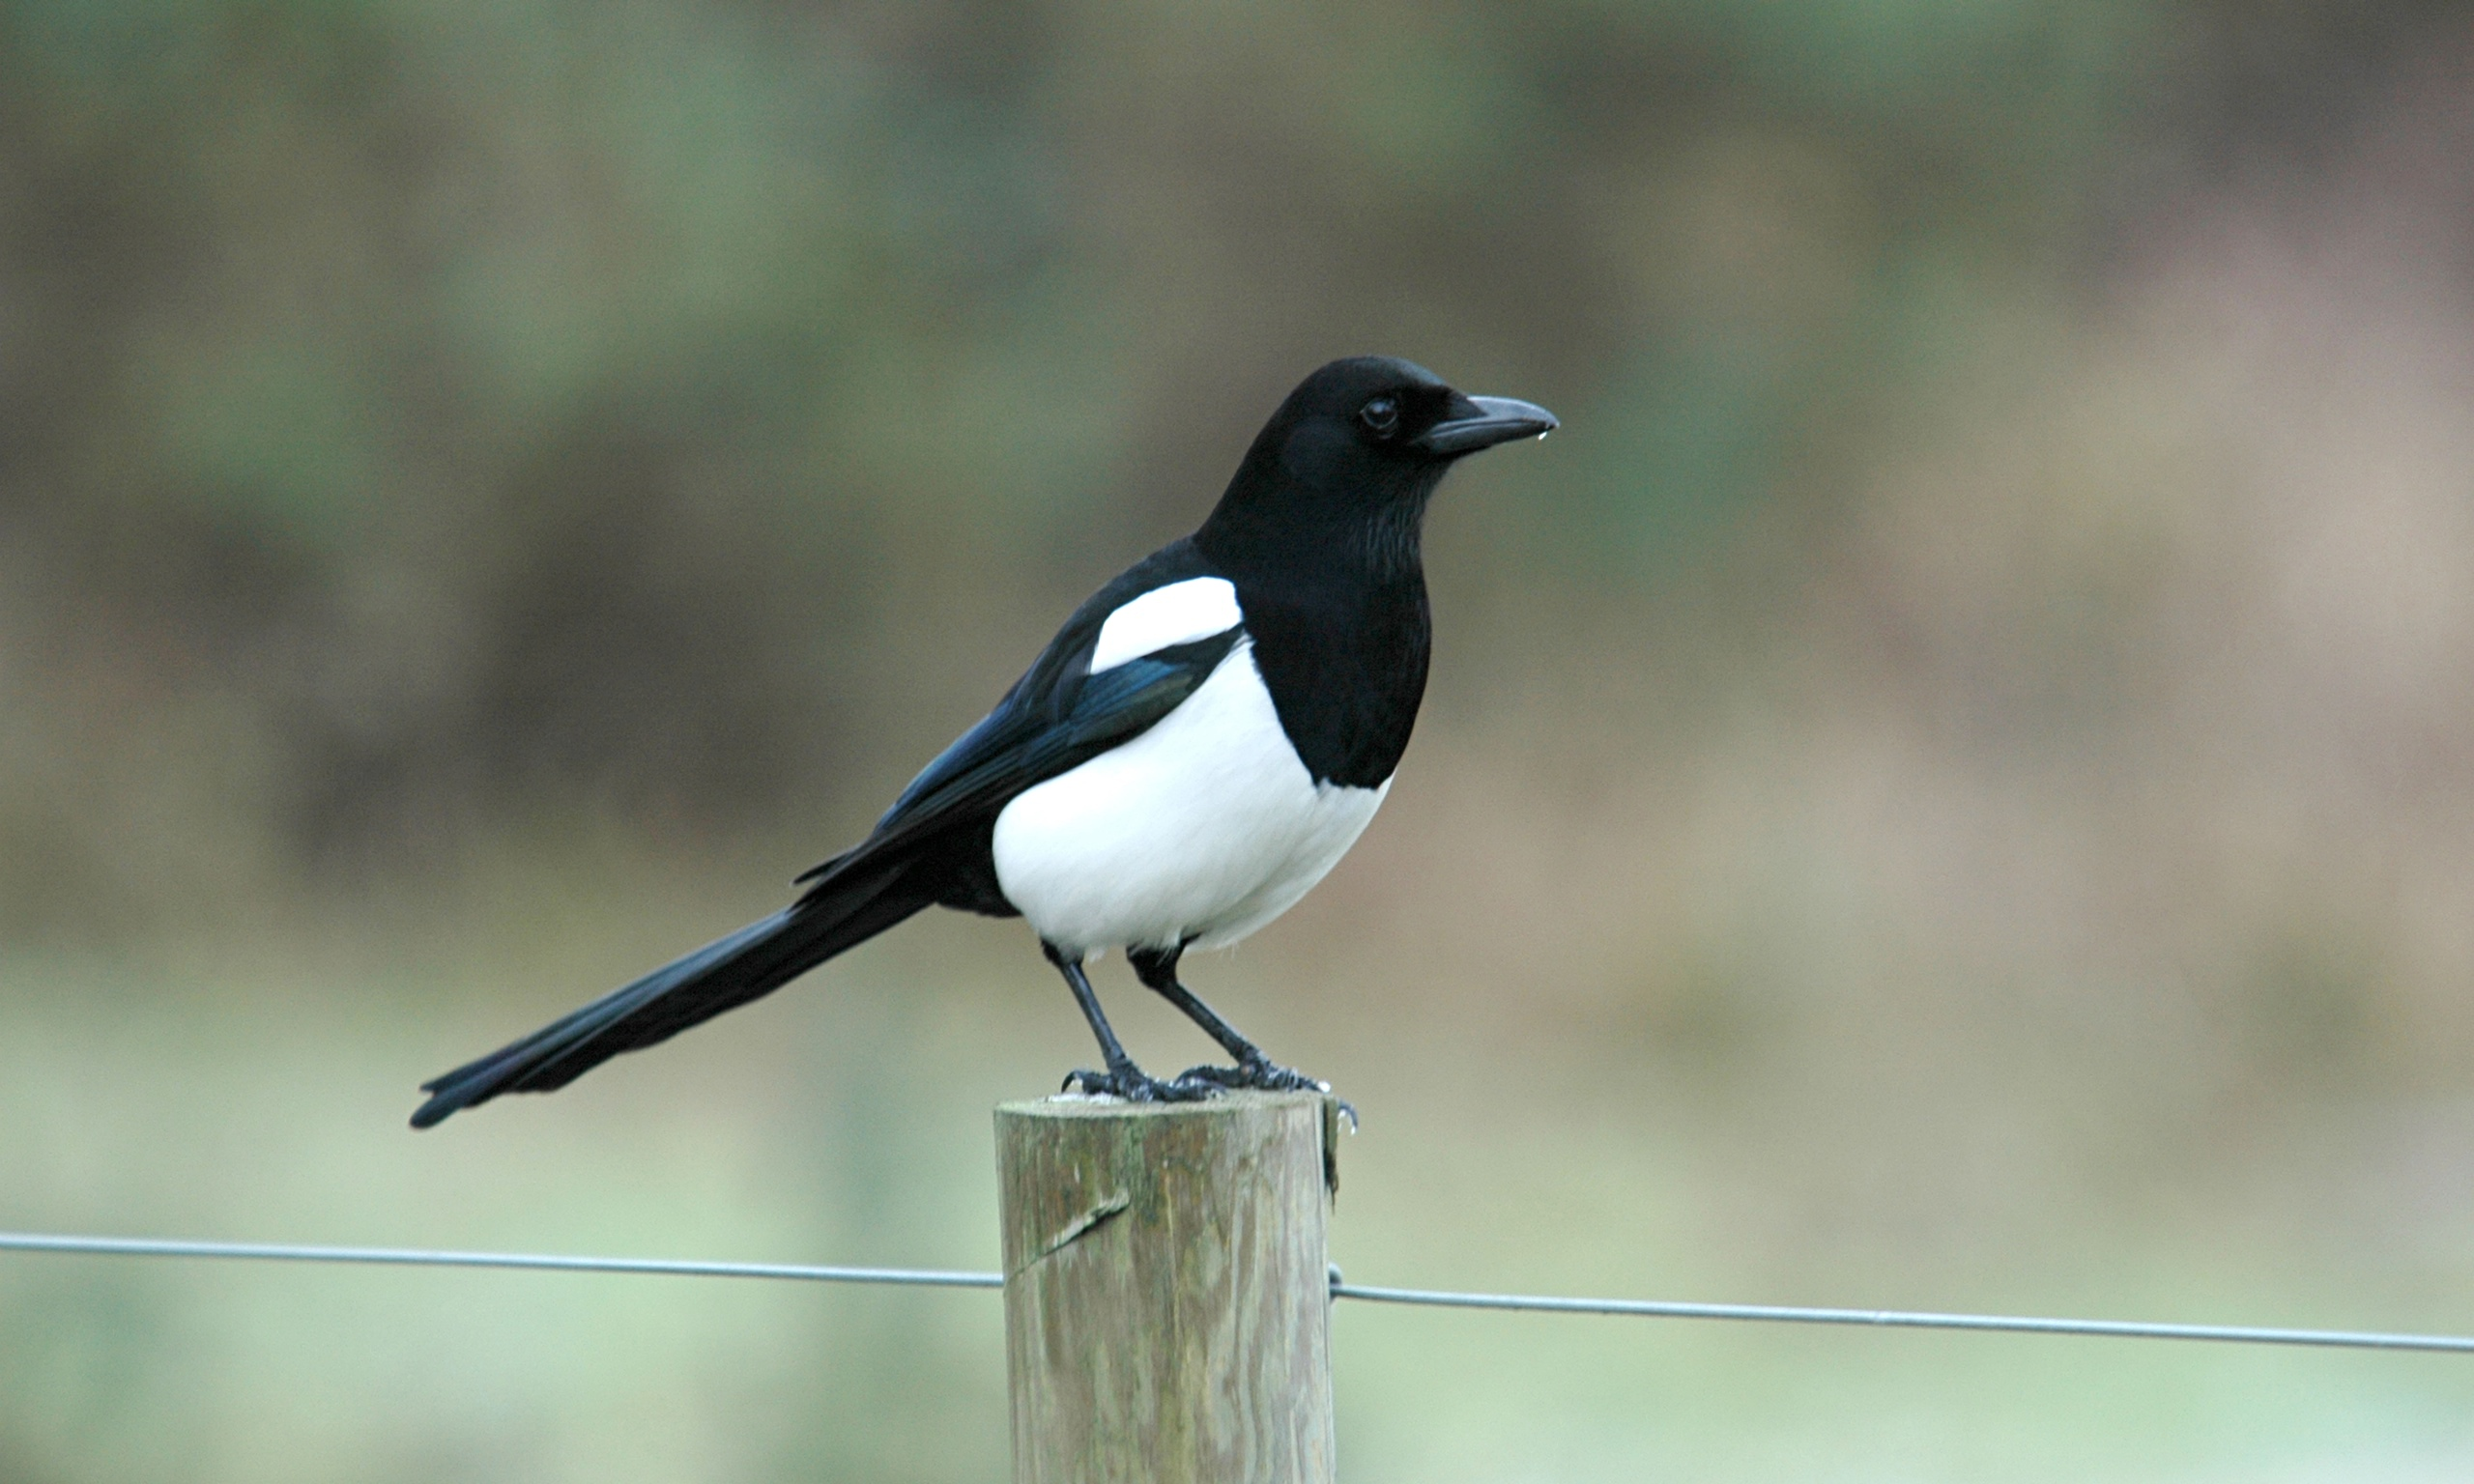 TLU55: Magpie, 934.77 Kb, by Salvatore Hennessee #2170425